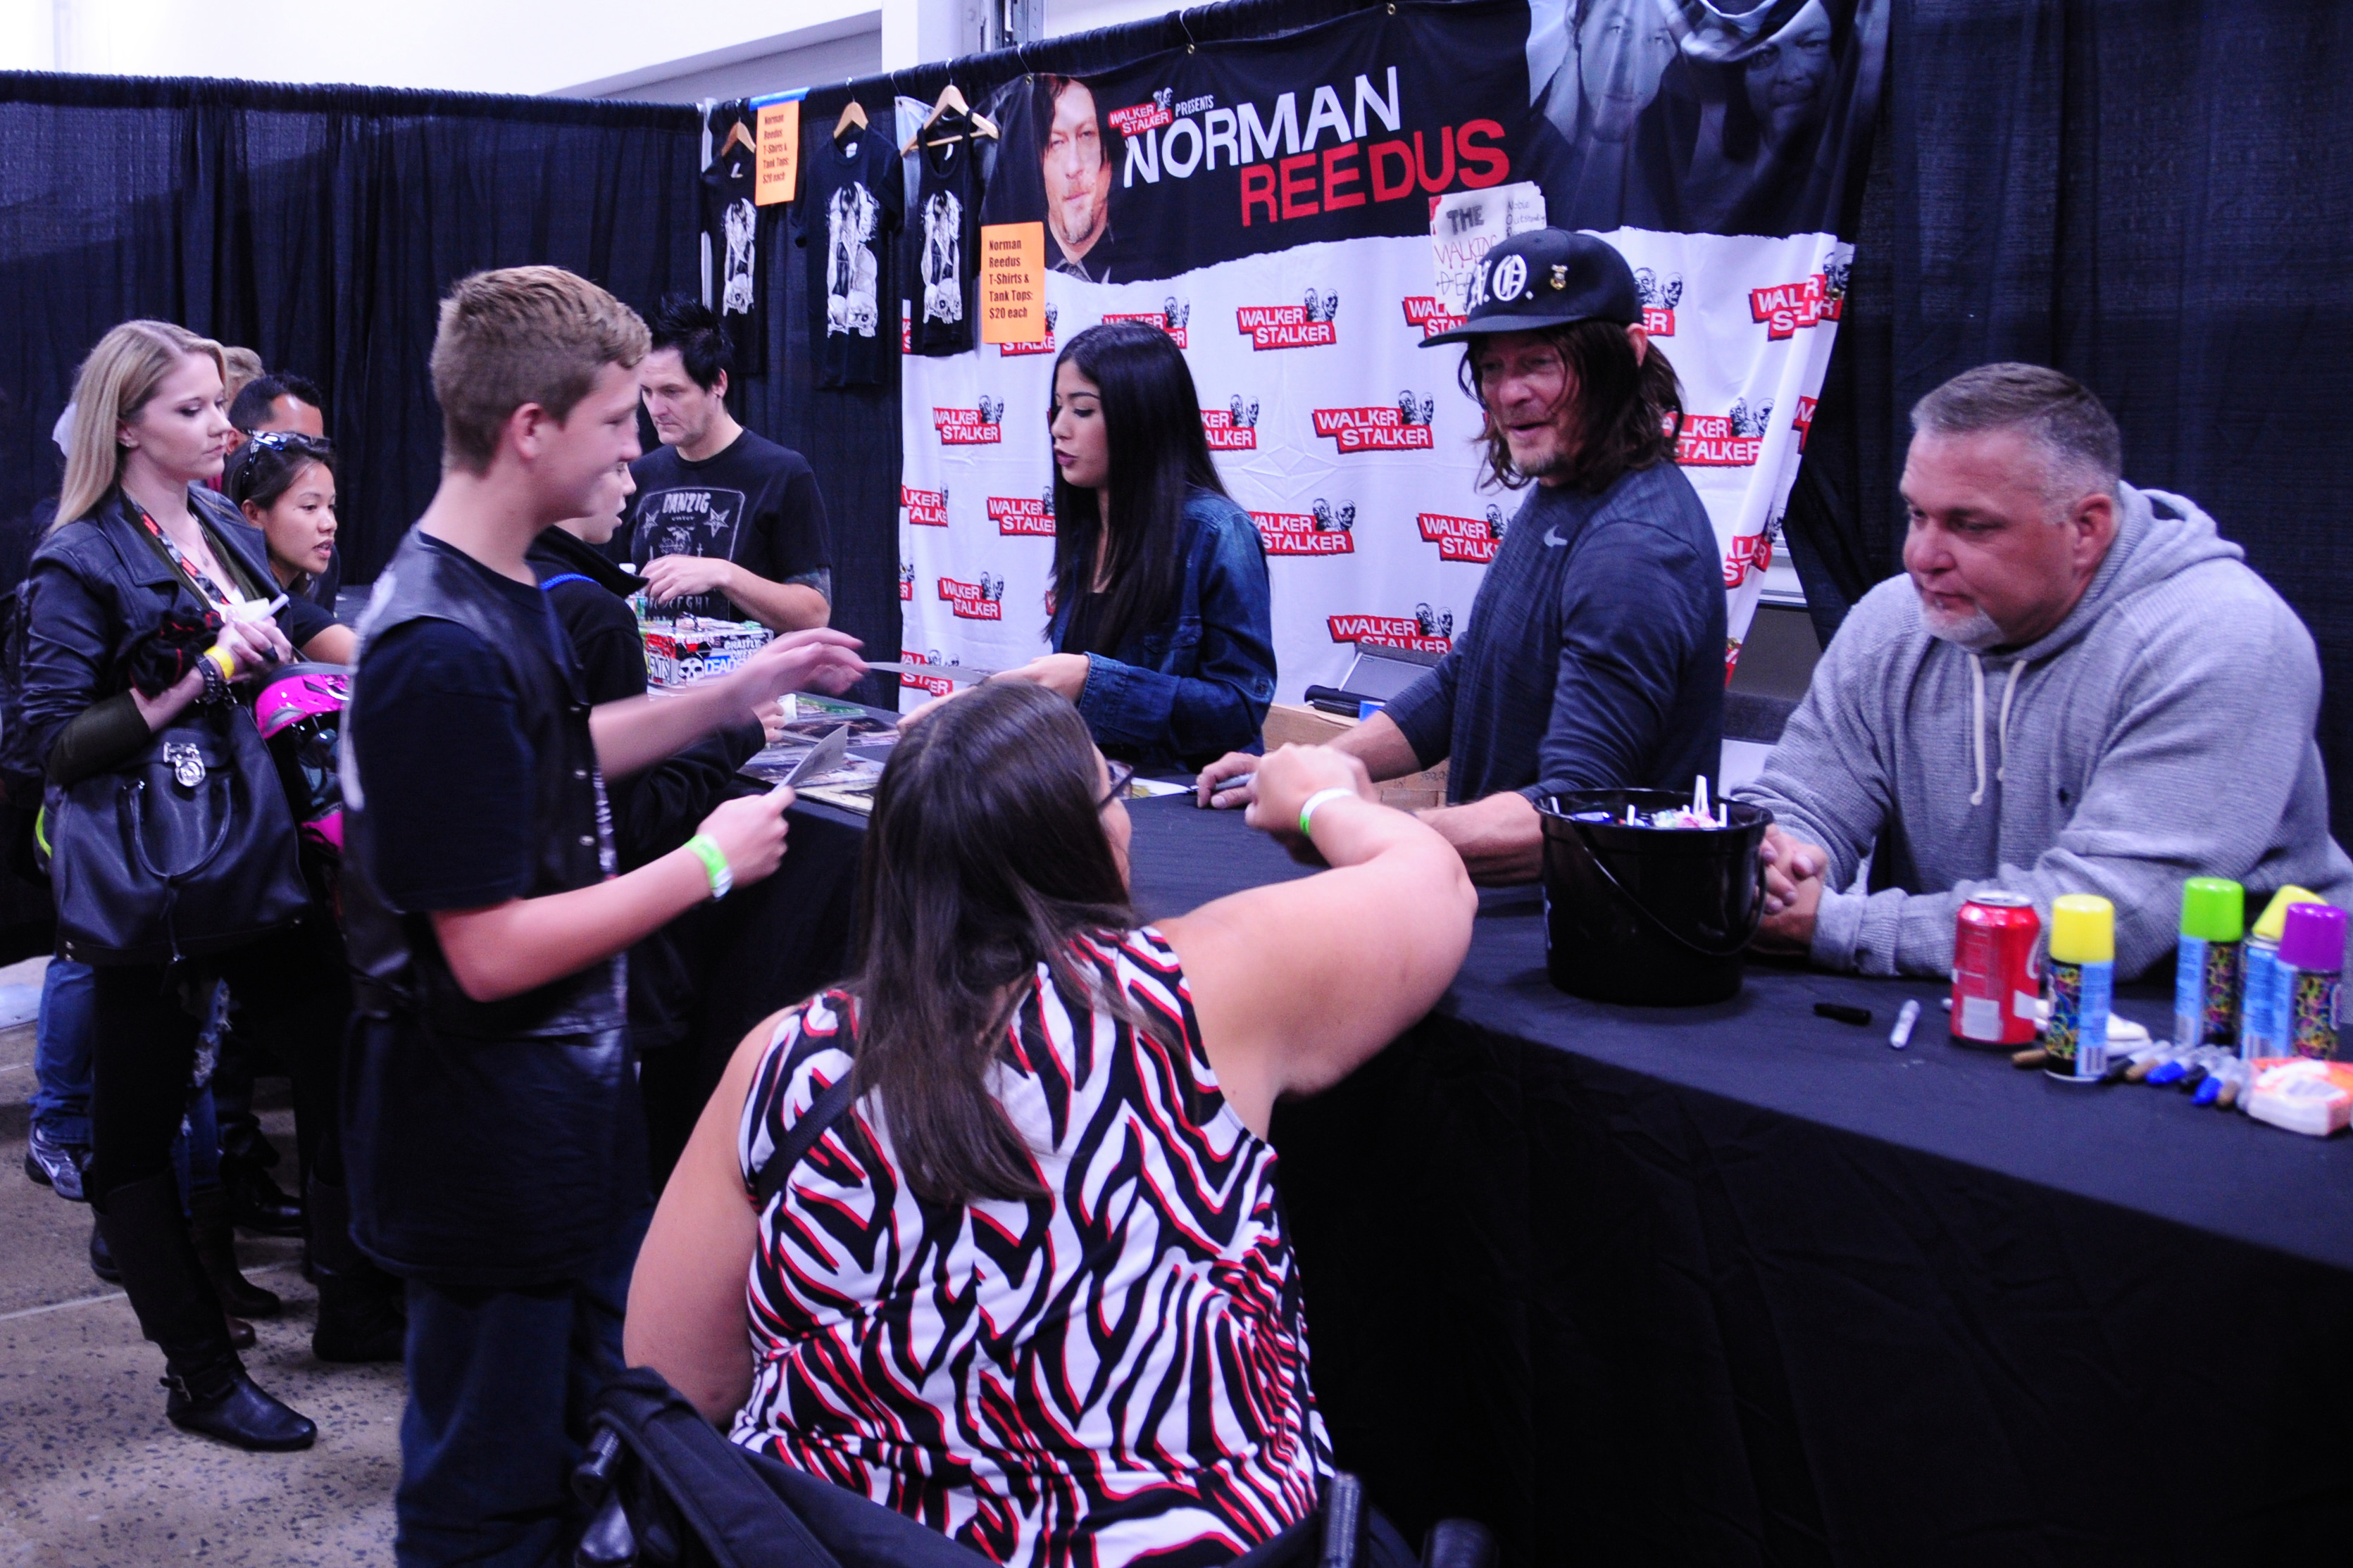 Walker Stalker Con WSC The Walking Dead Norman Reedus Daryl Dixon